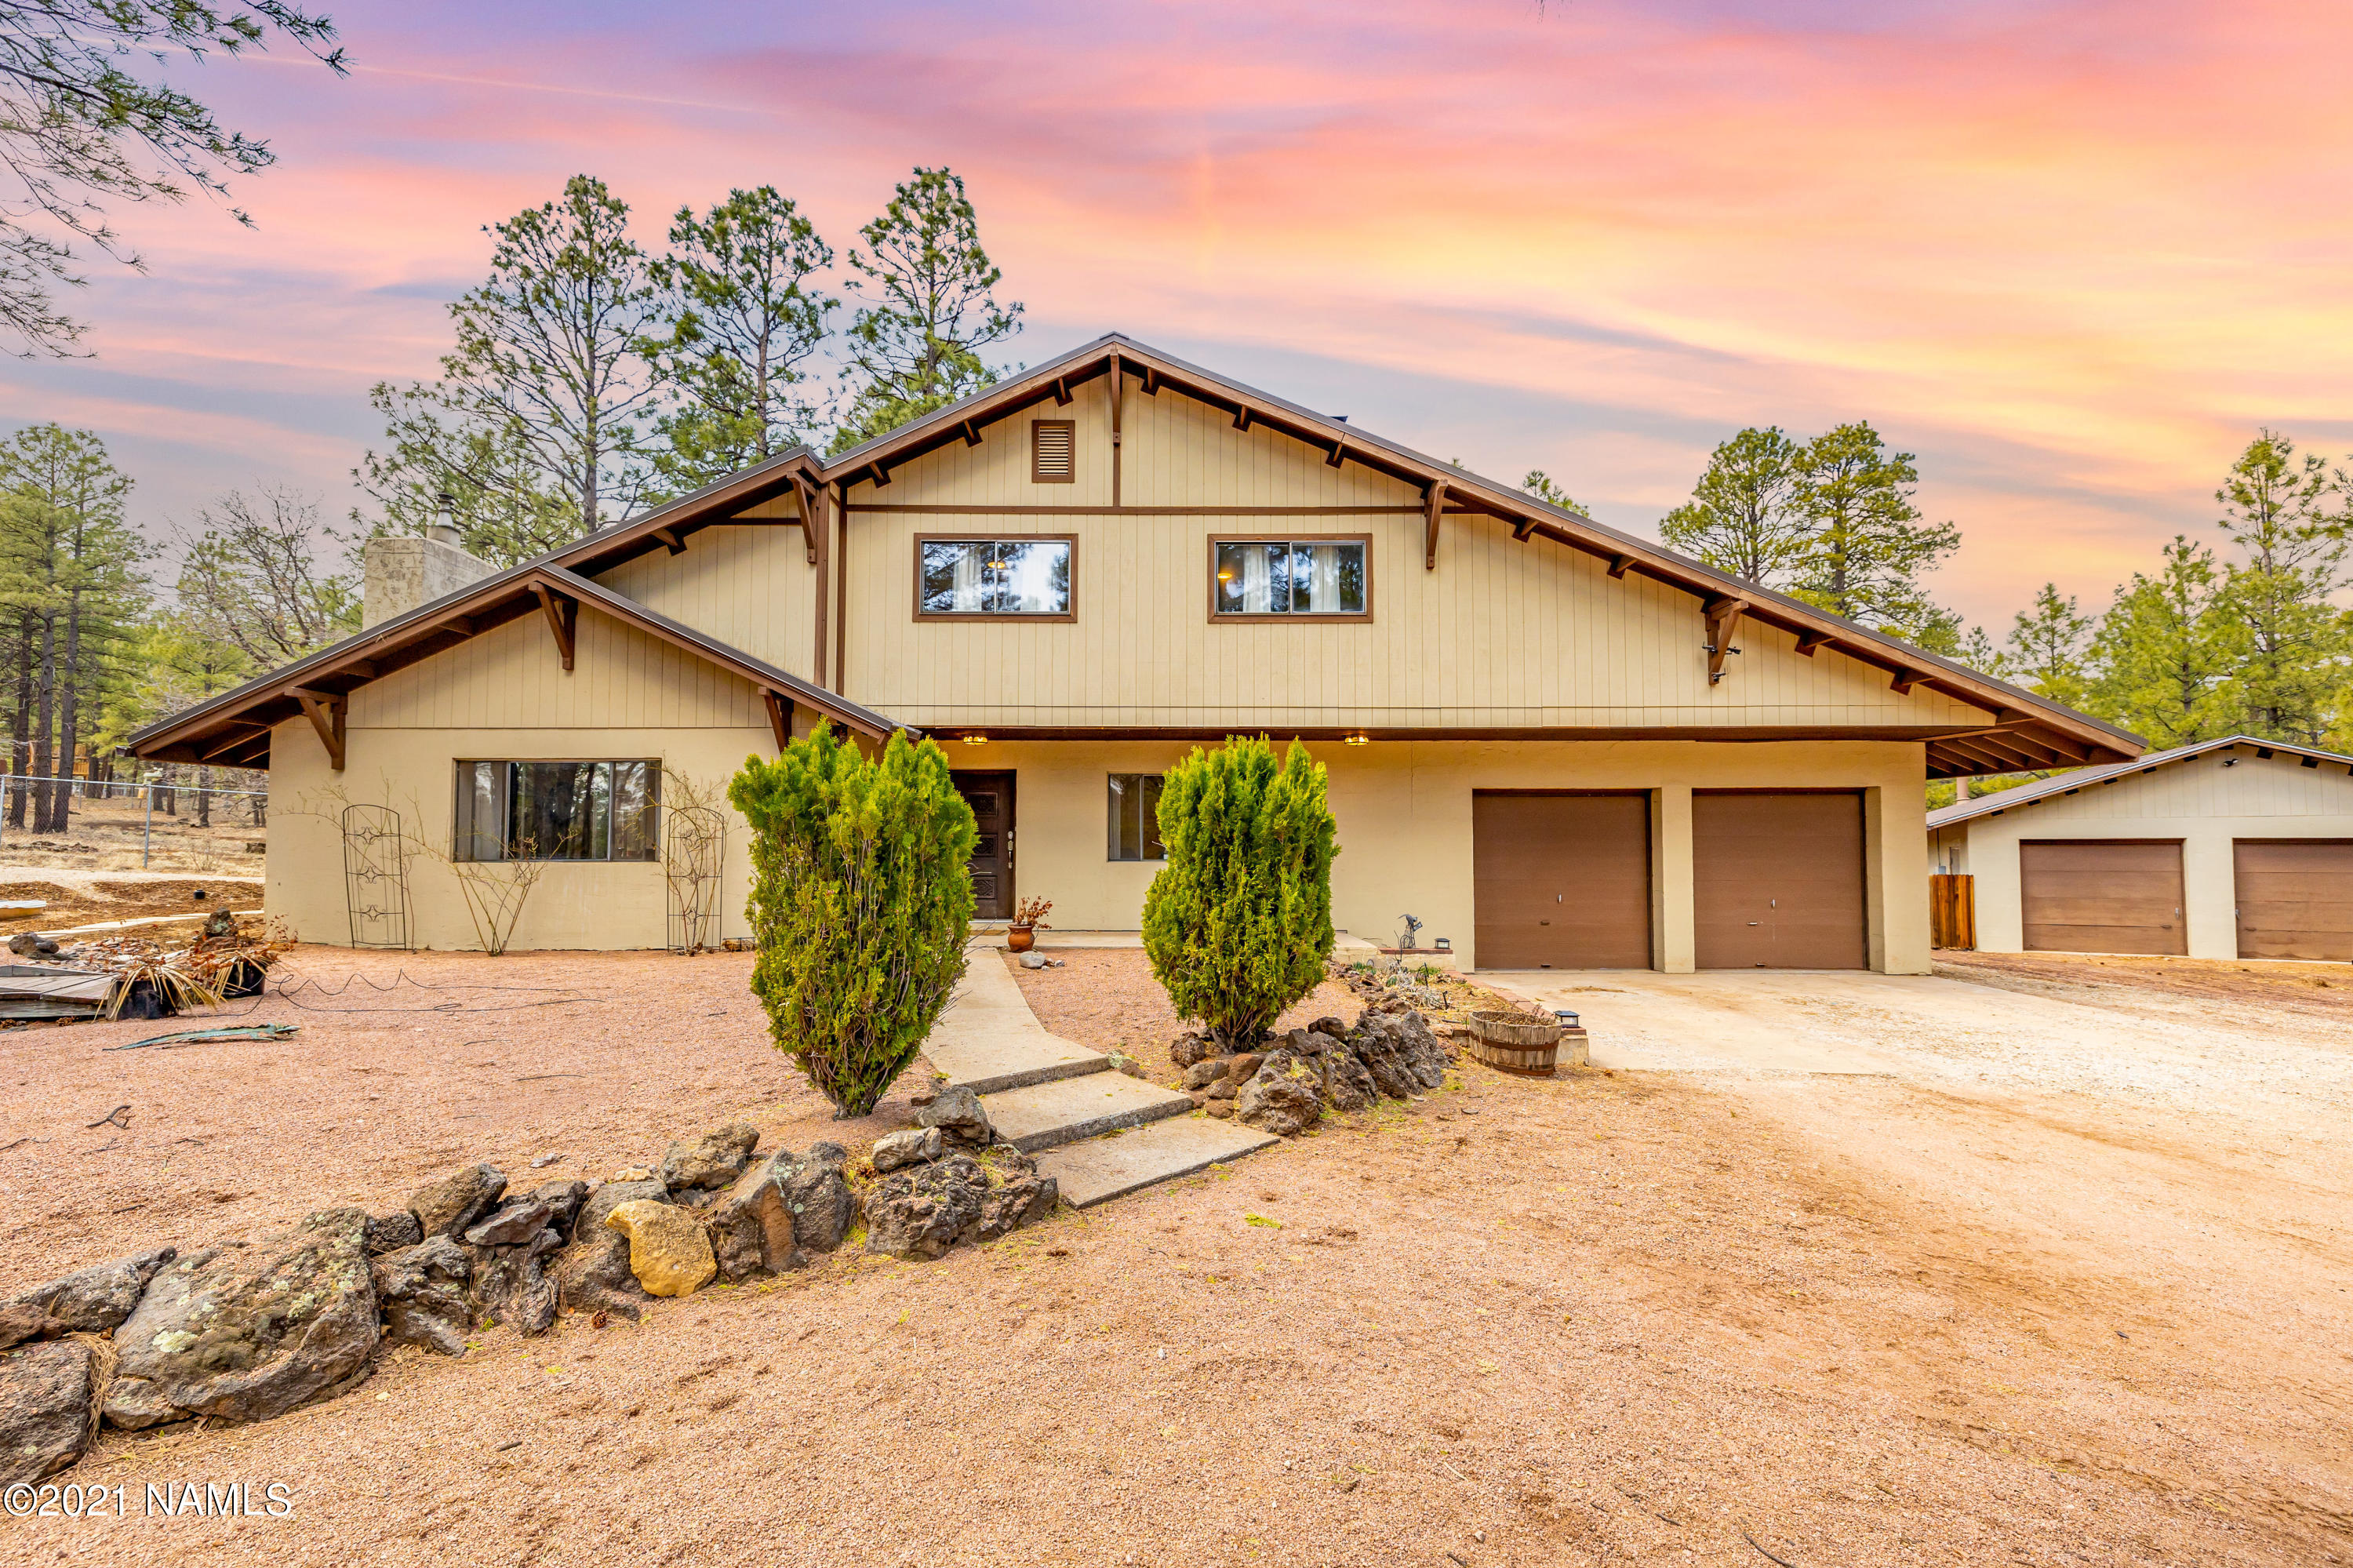 Photo of 7220 Lindsey Road, Flagstaff, AZ 86004